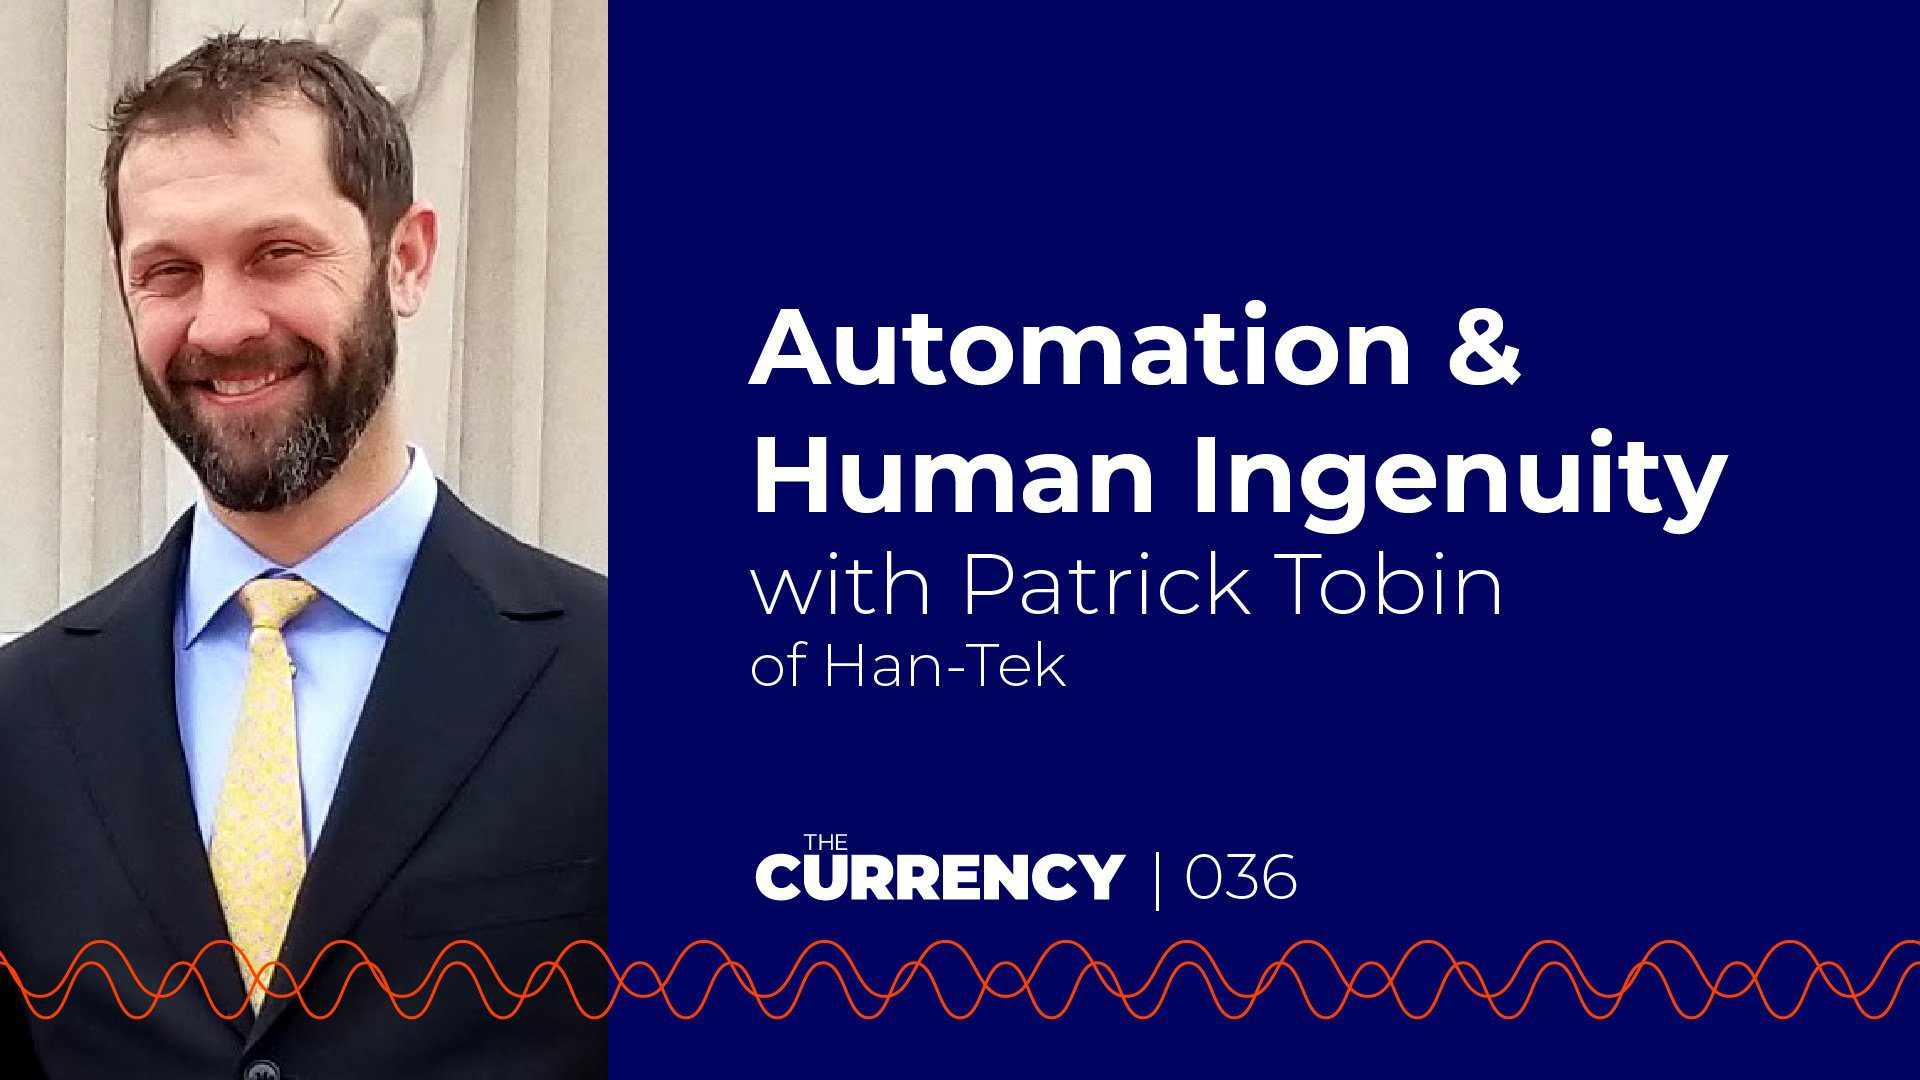 Patrick Tobin of Han-Tek on The Currency podcast